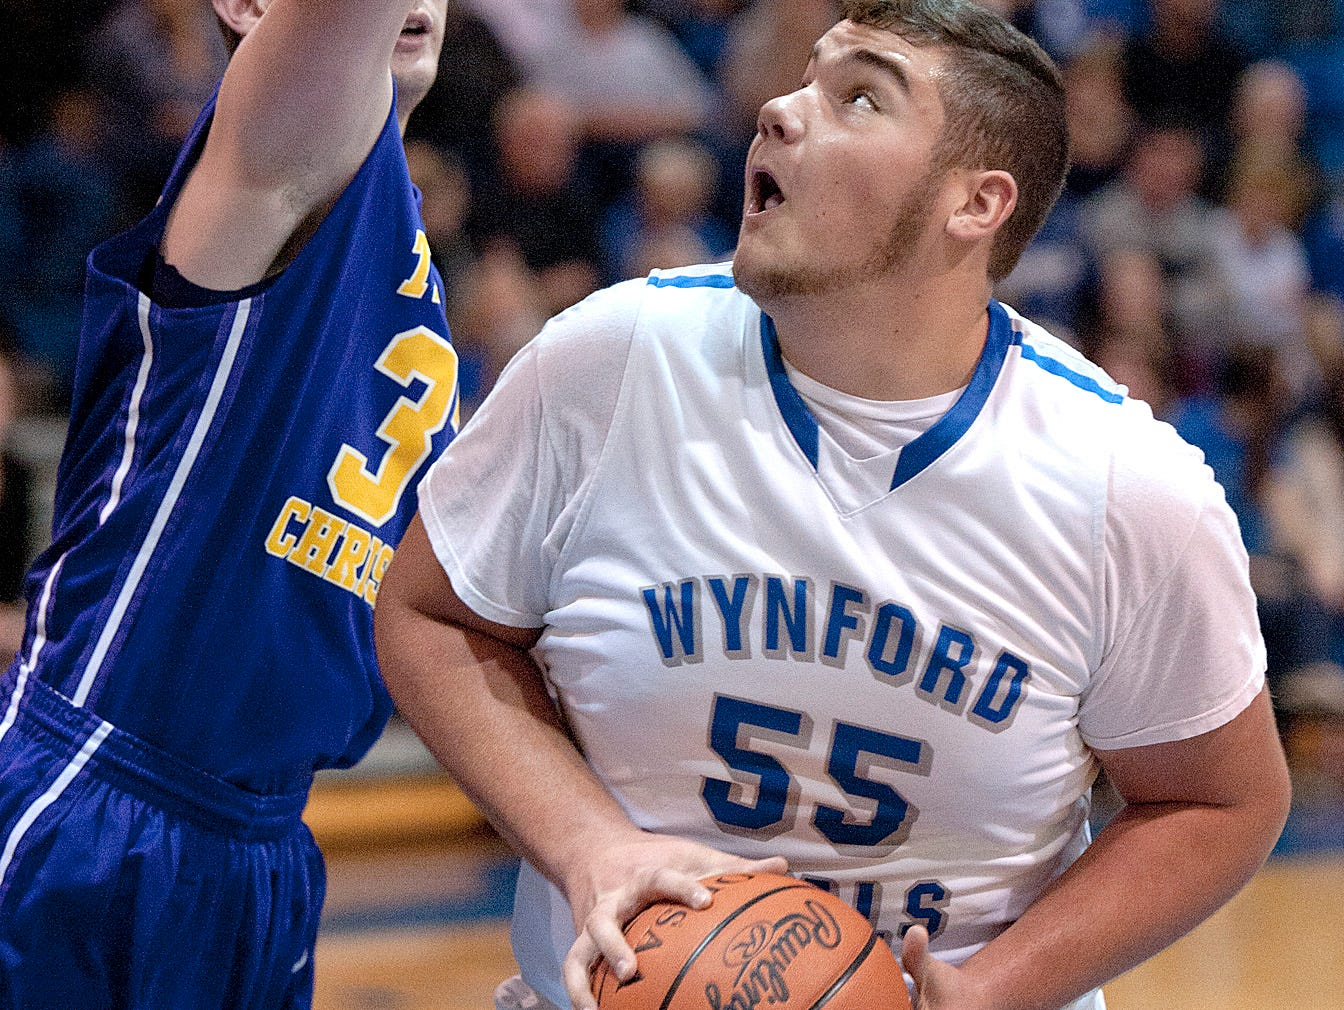 Wynford's Nate Sparks looks to score.